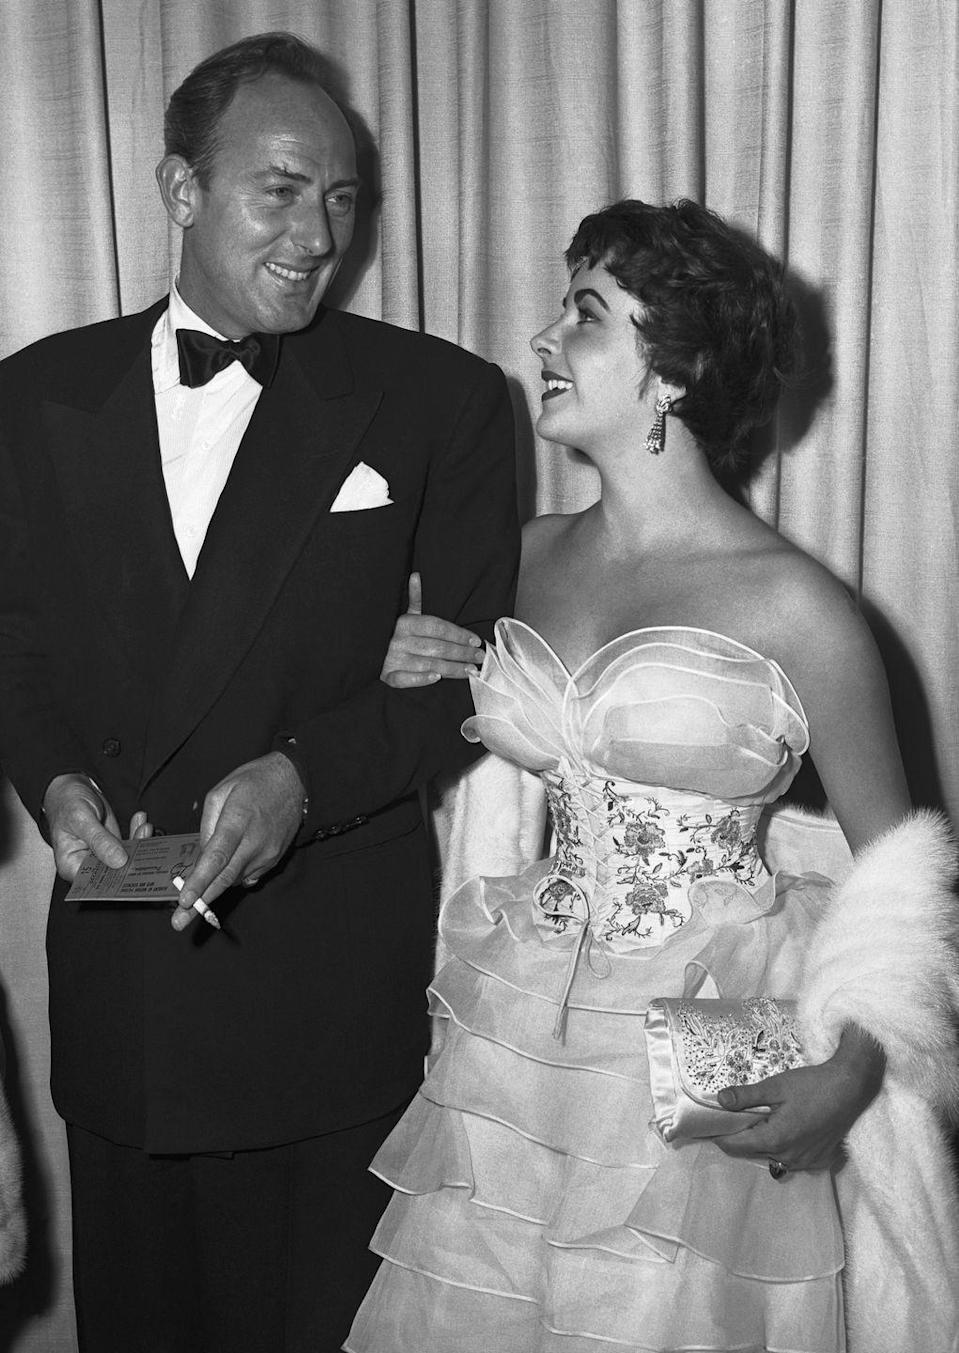 <p>Liz dropped jaws in this tiered strapless gown featuring a corset lace-up bodice. She complemented it with drop earrings and a coordinating satin clutch. She posed with her husband Michael Wilding, whom she married the previous year.</p>